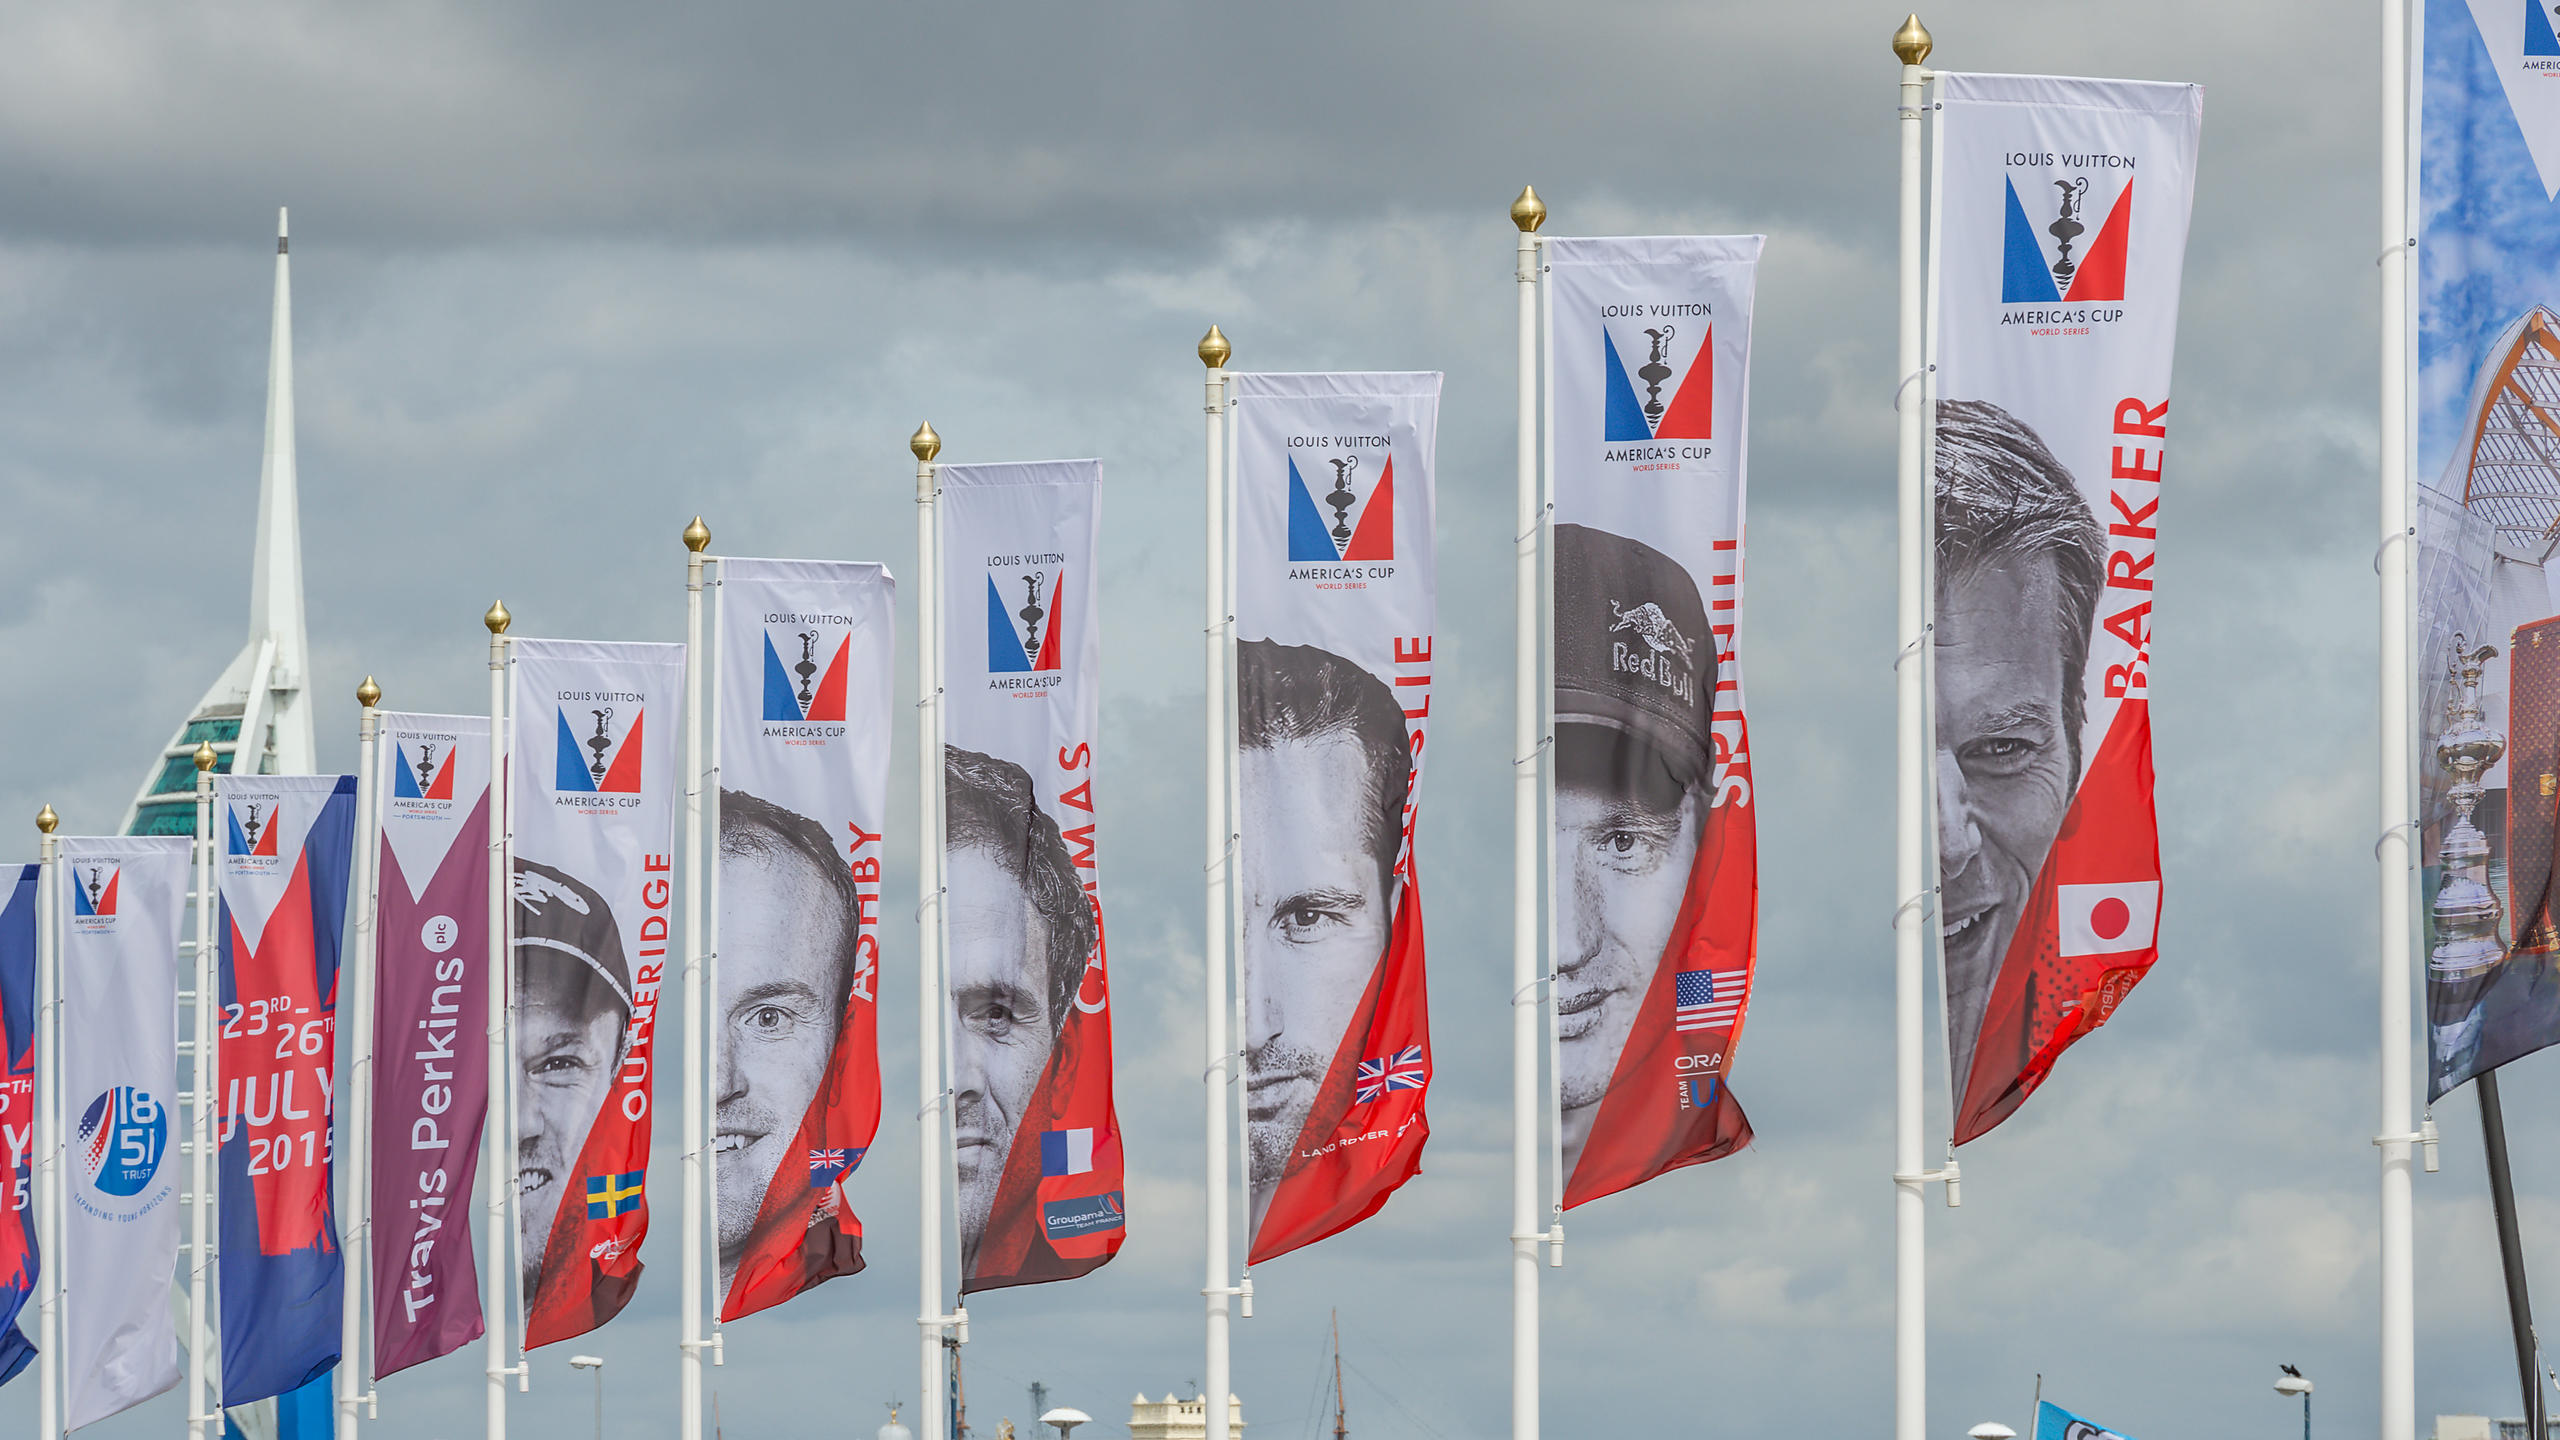 Banners of the Ben Ainslie Race Team